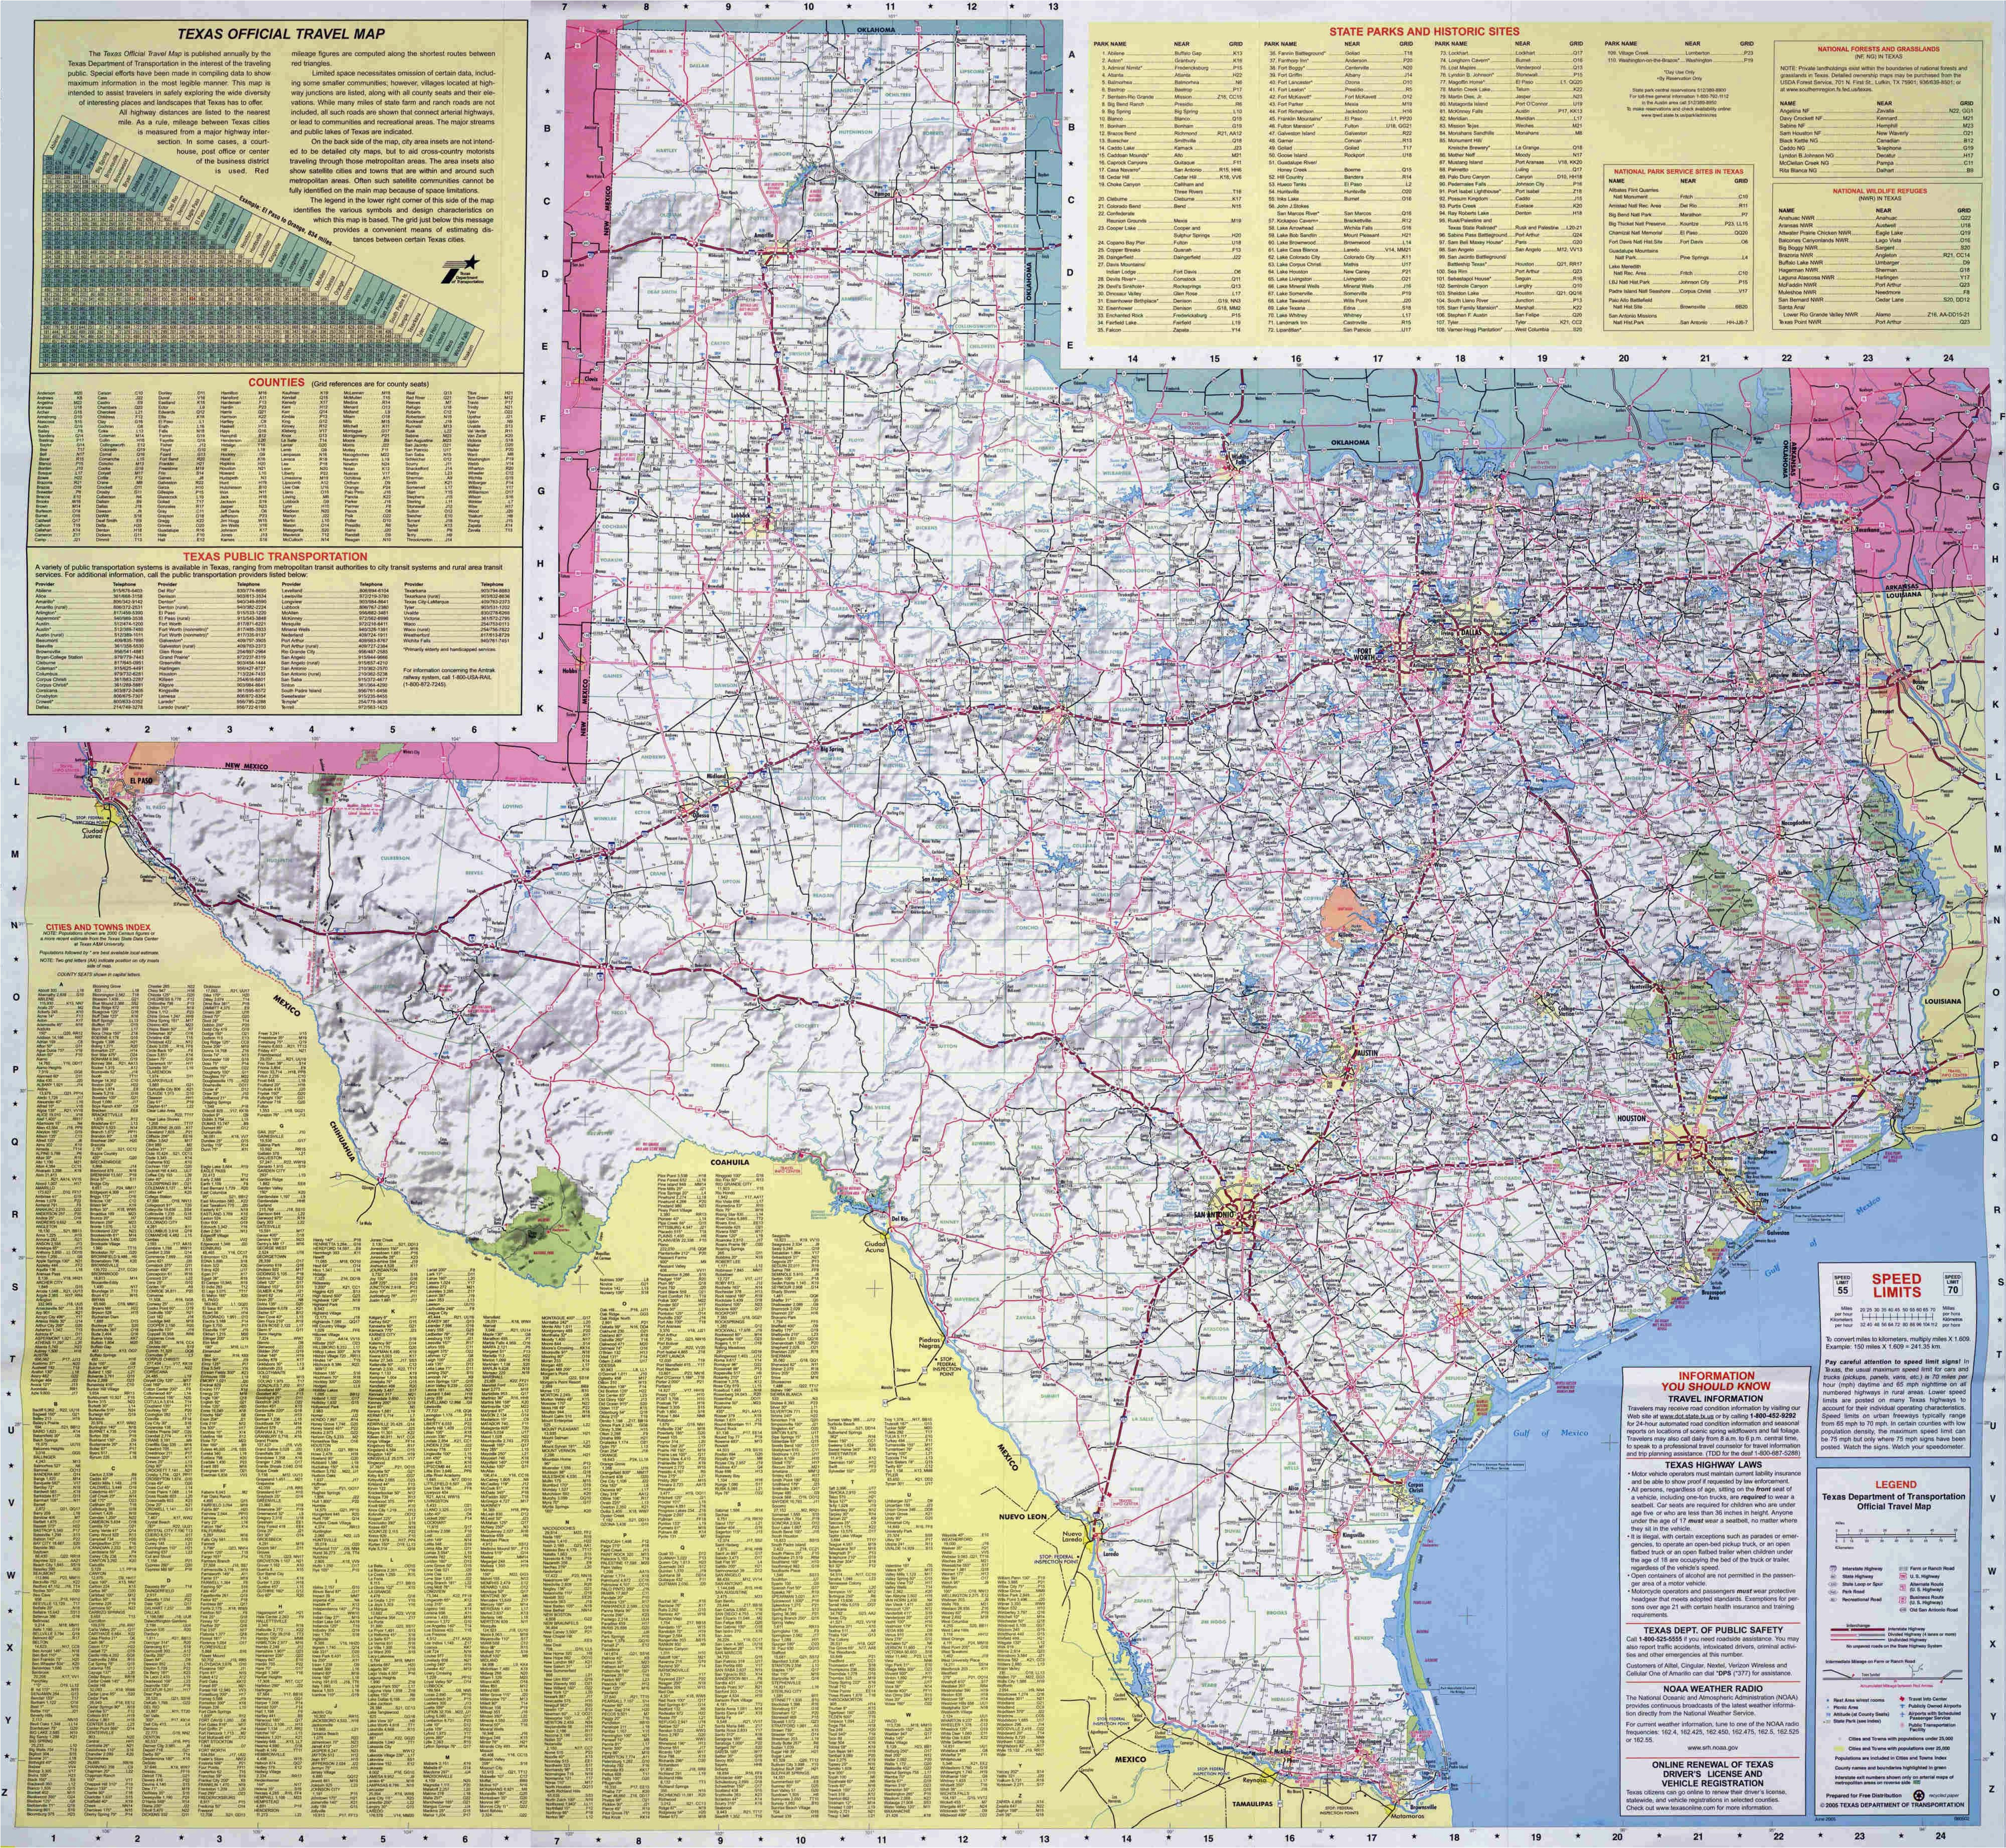 Large Map Of Texas.Old Texas Road Maps Large Road Map Of The State Of Texas Texas State